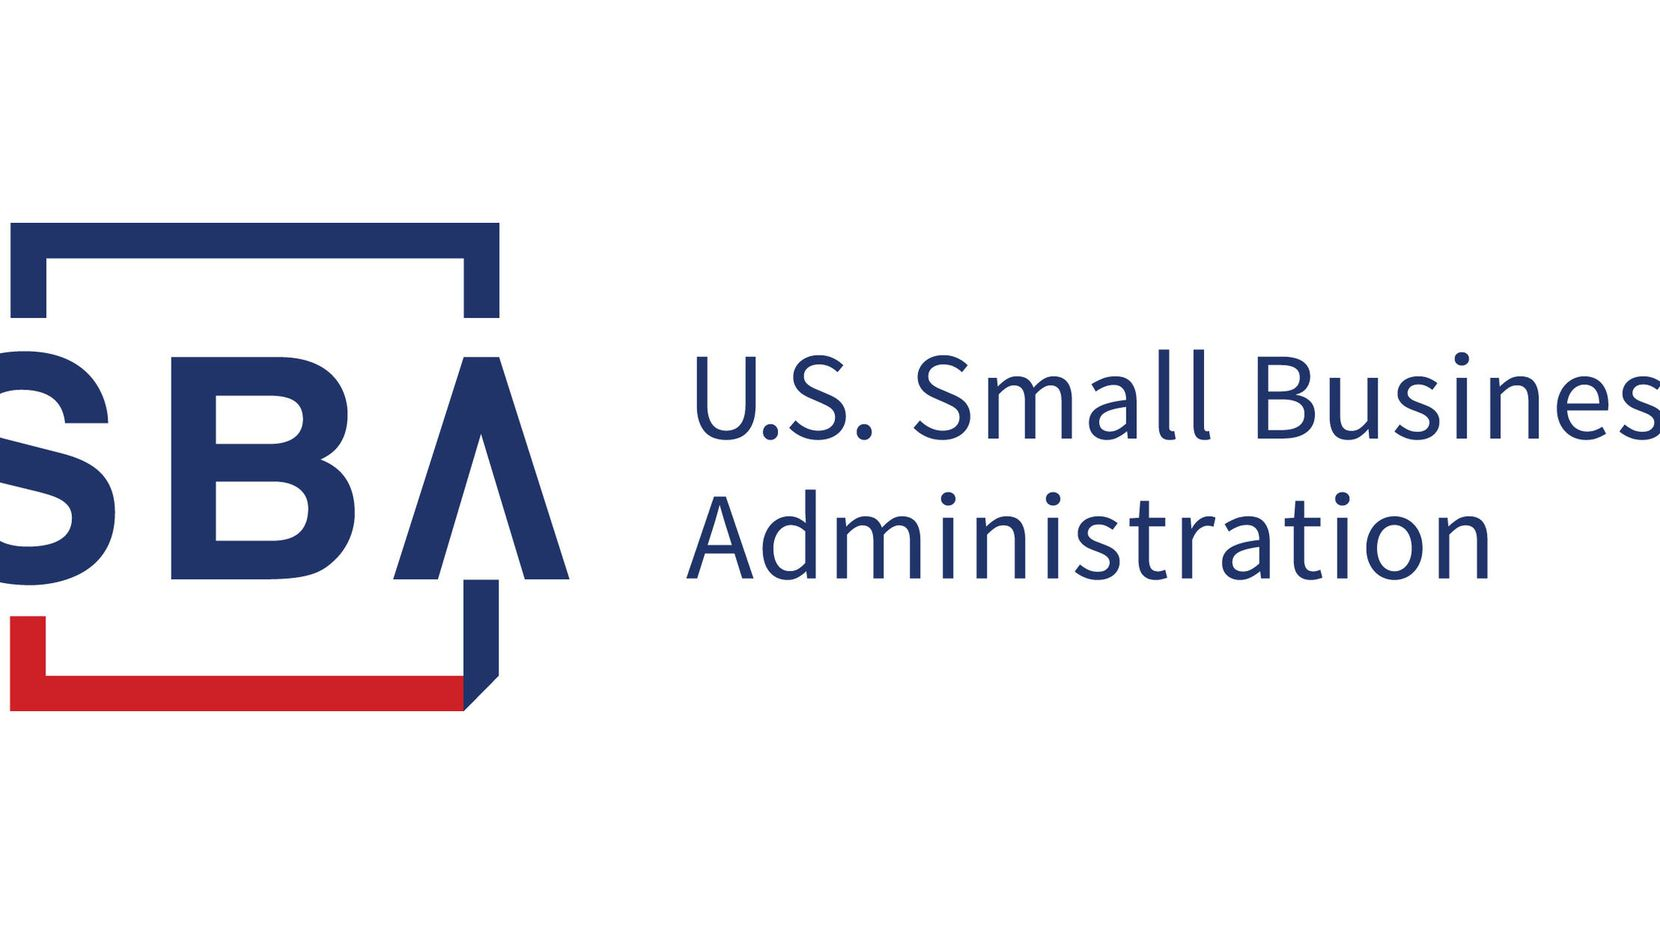 The U.S. Small Business Administration restarted the Paycheck Protection Program this week with $284 billion in pandemic-relief loans available.